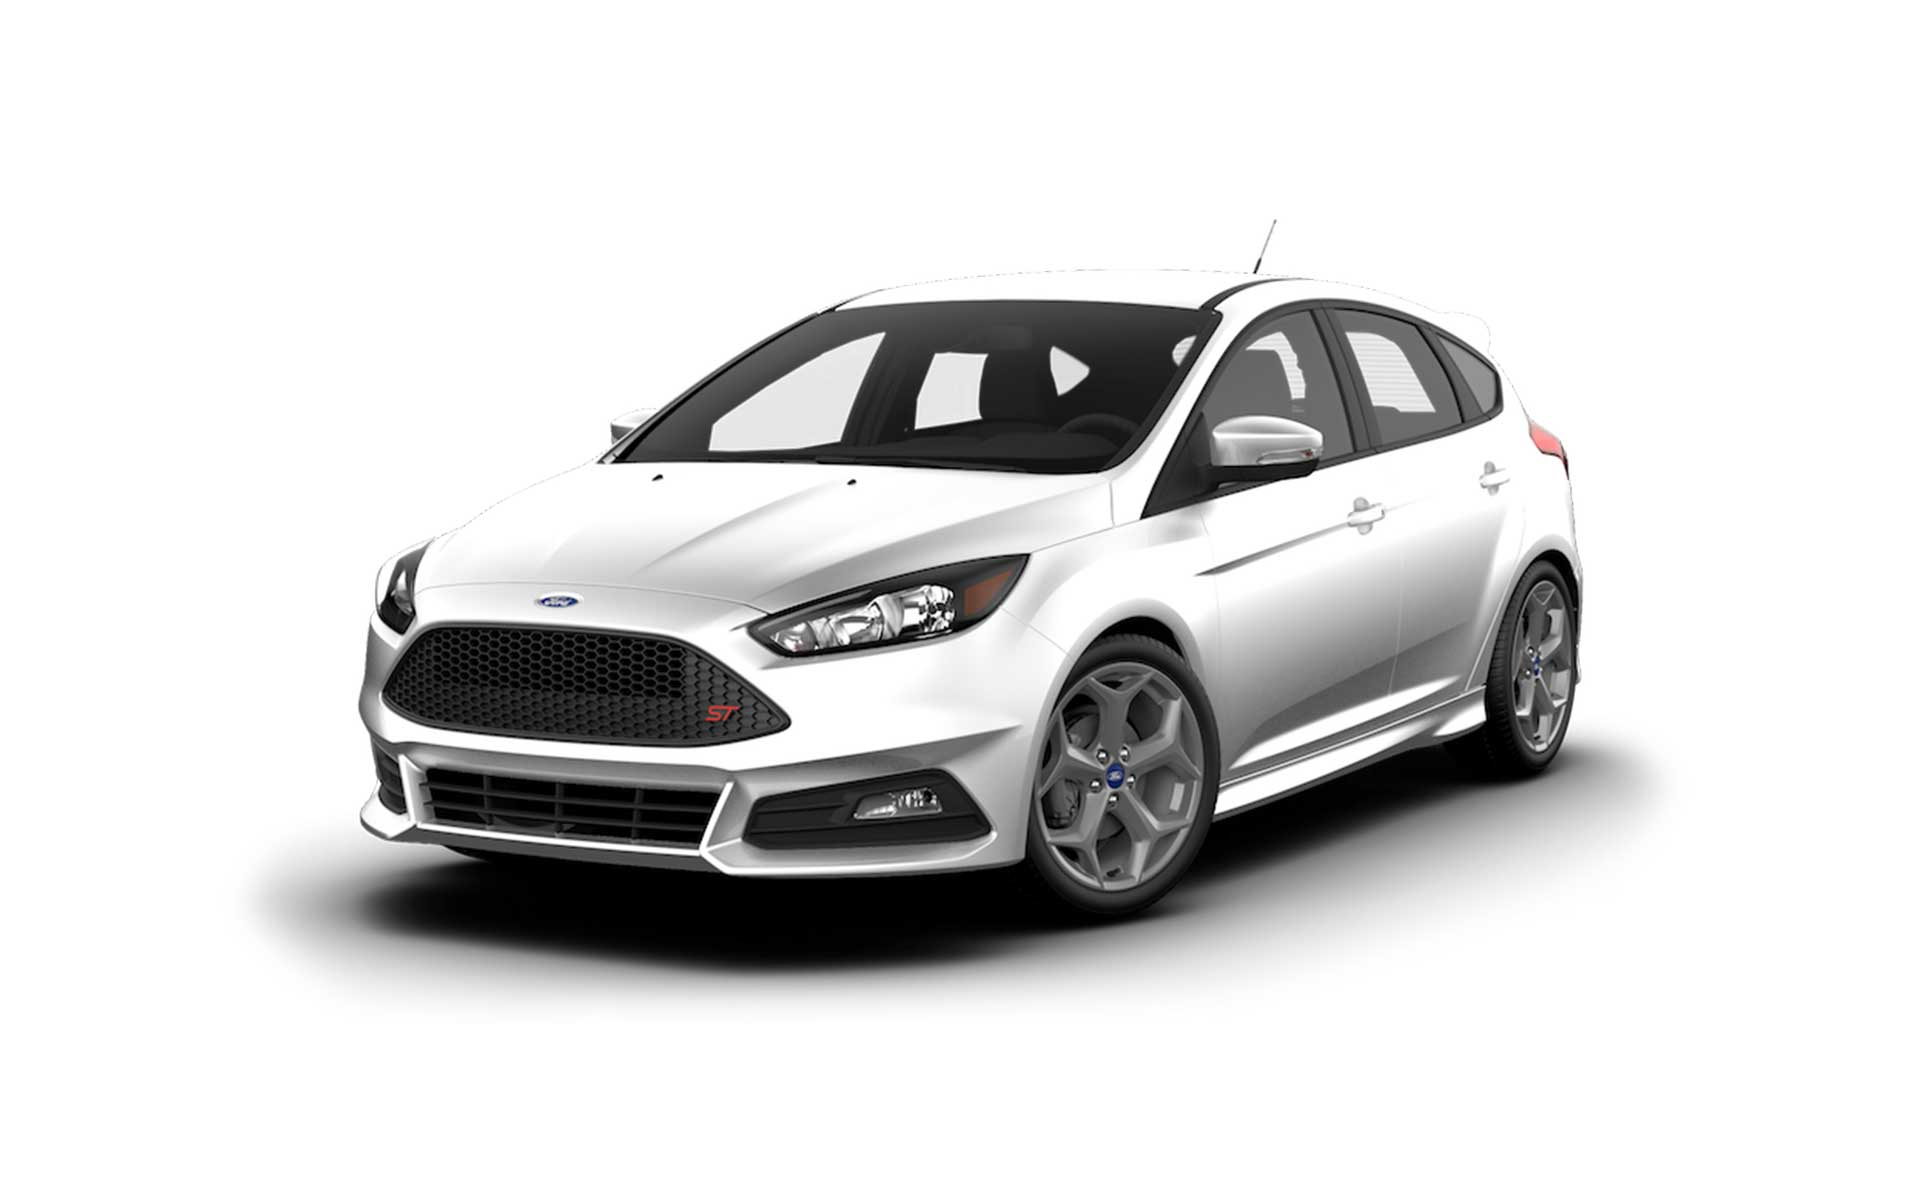 Cars For Sale Chattanooga >> Rent To Own Cars Sales Group Inc Car Dealer In